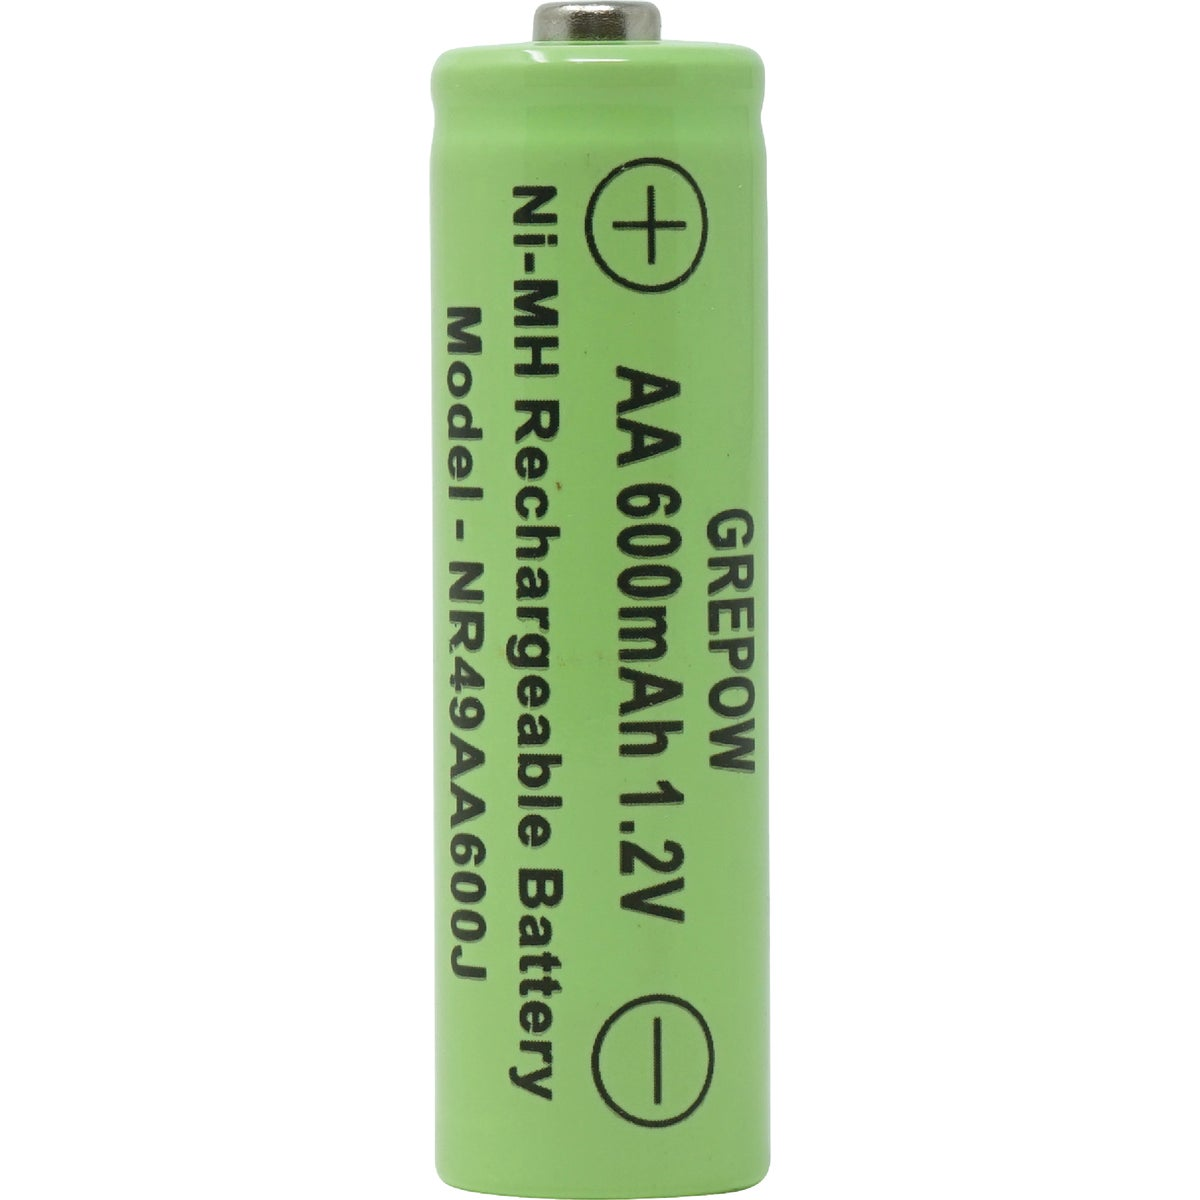 4PK AA NICAD BATTERY - 97125 by Woods Wire Coleman